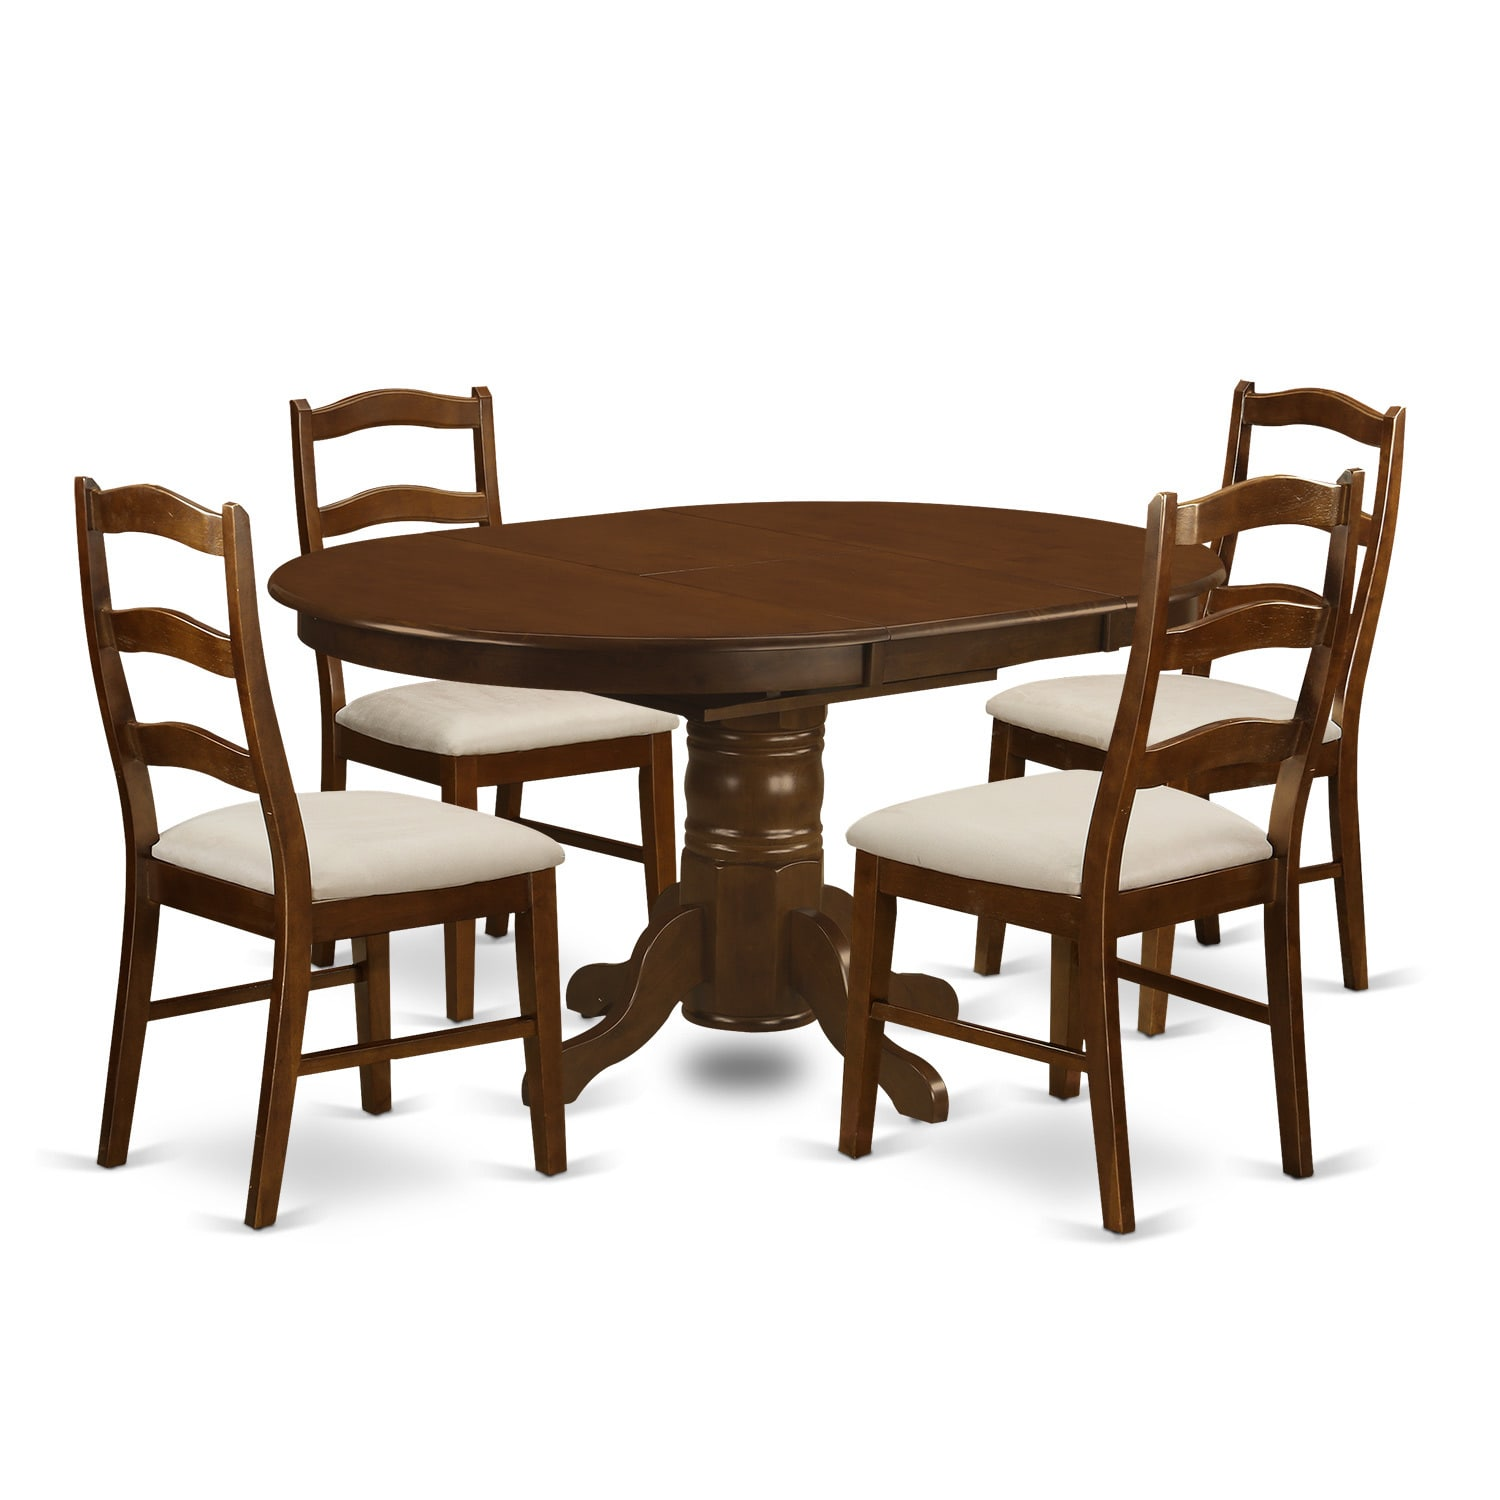 East West Furniture Llc Kehe Esp C Kenley Dining Table With One 18